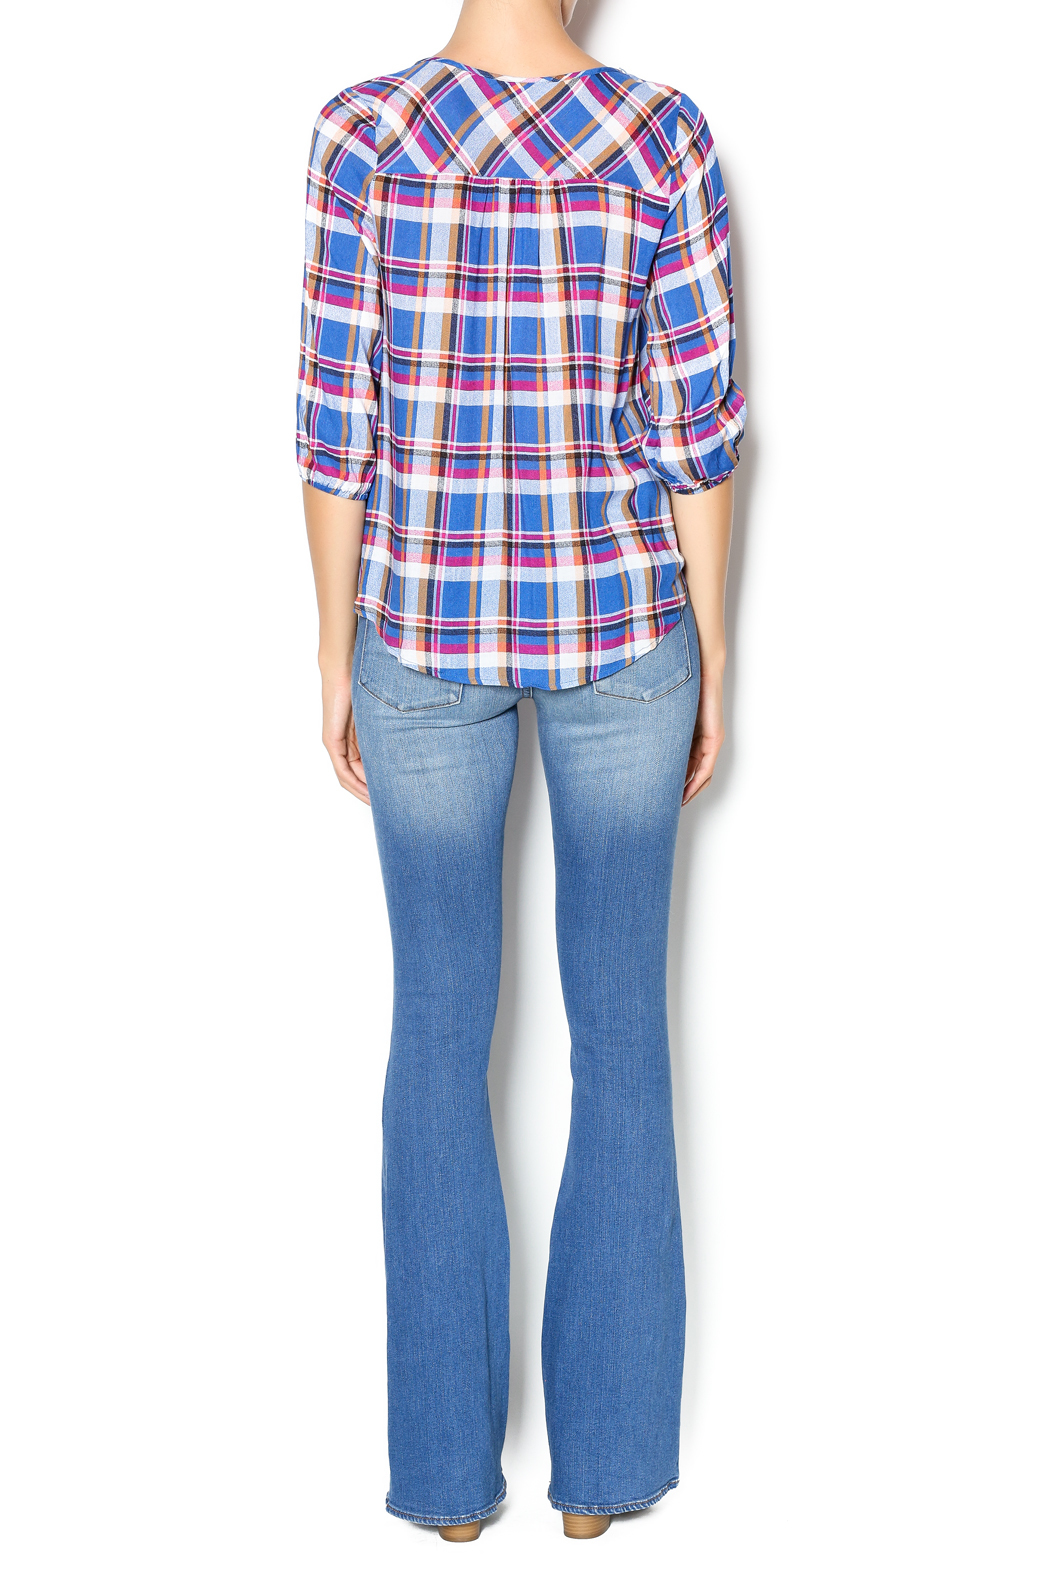 Leshop Plaid Trim Top - Side Cropped Image